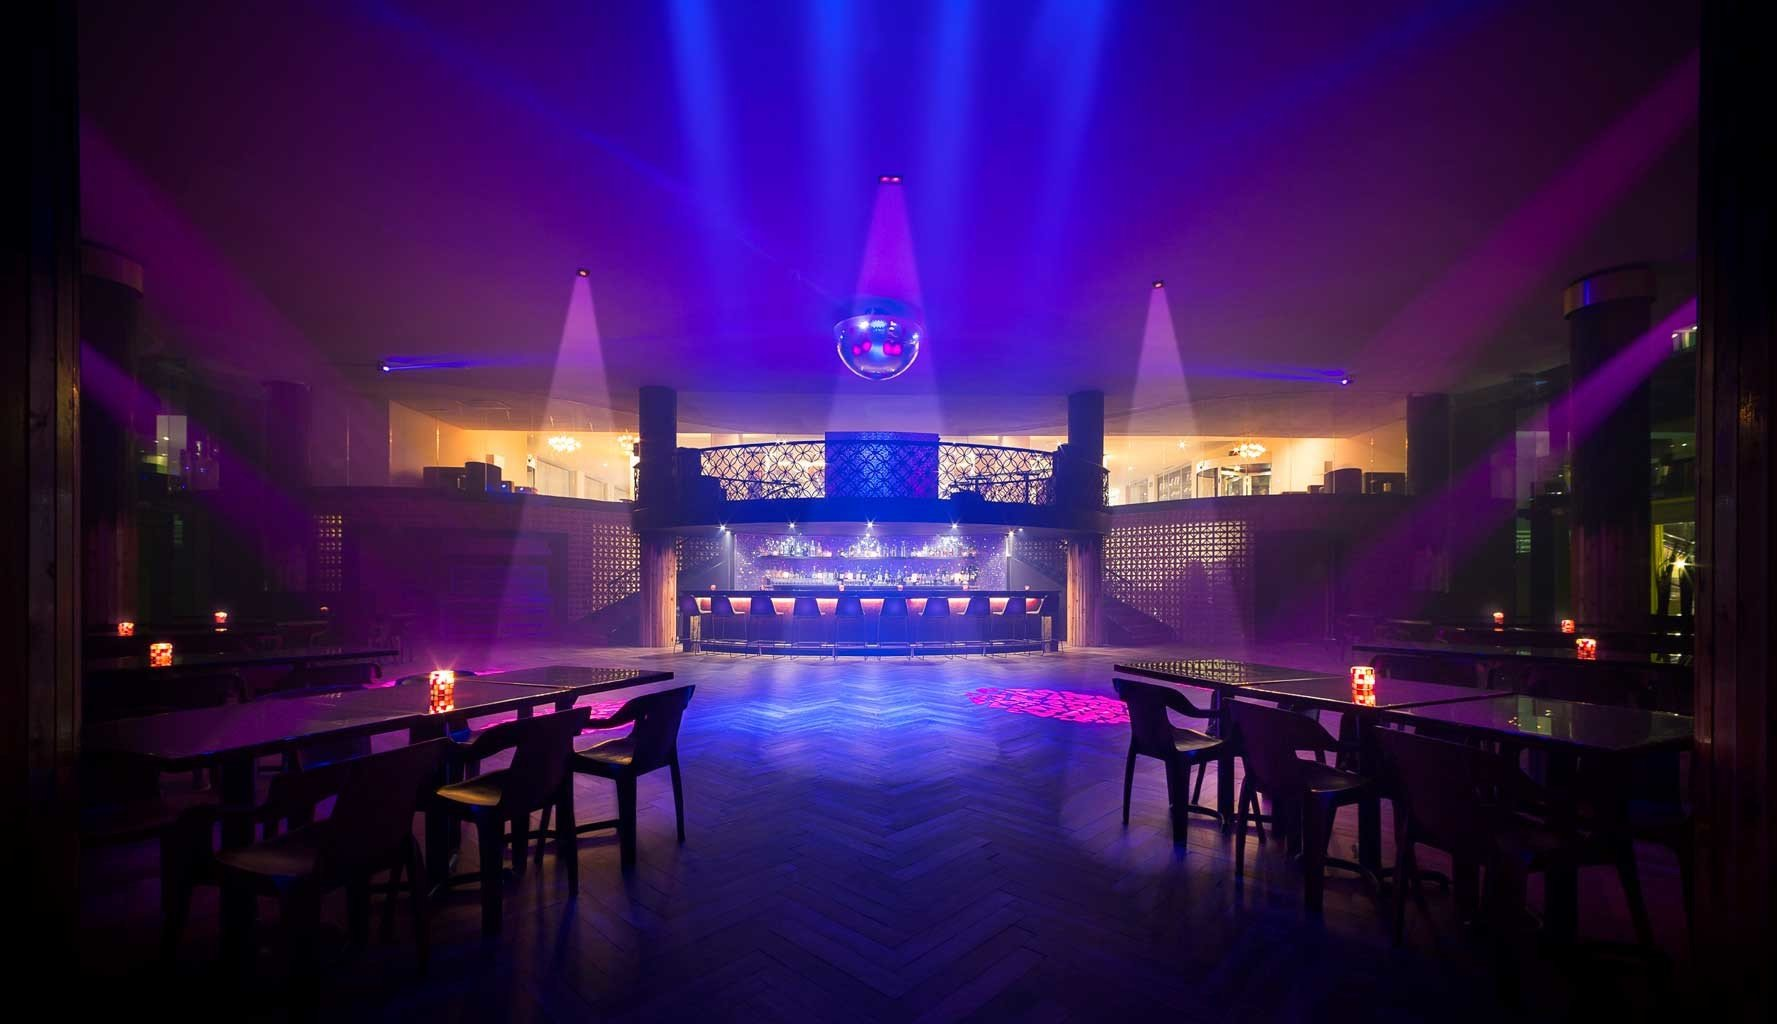 Bar Modern Nightlife Party Resort scene nightclub stage disco club music venue light musical theatre dark night